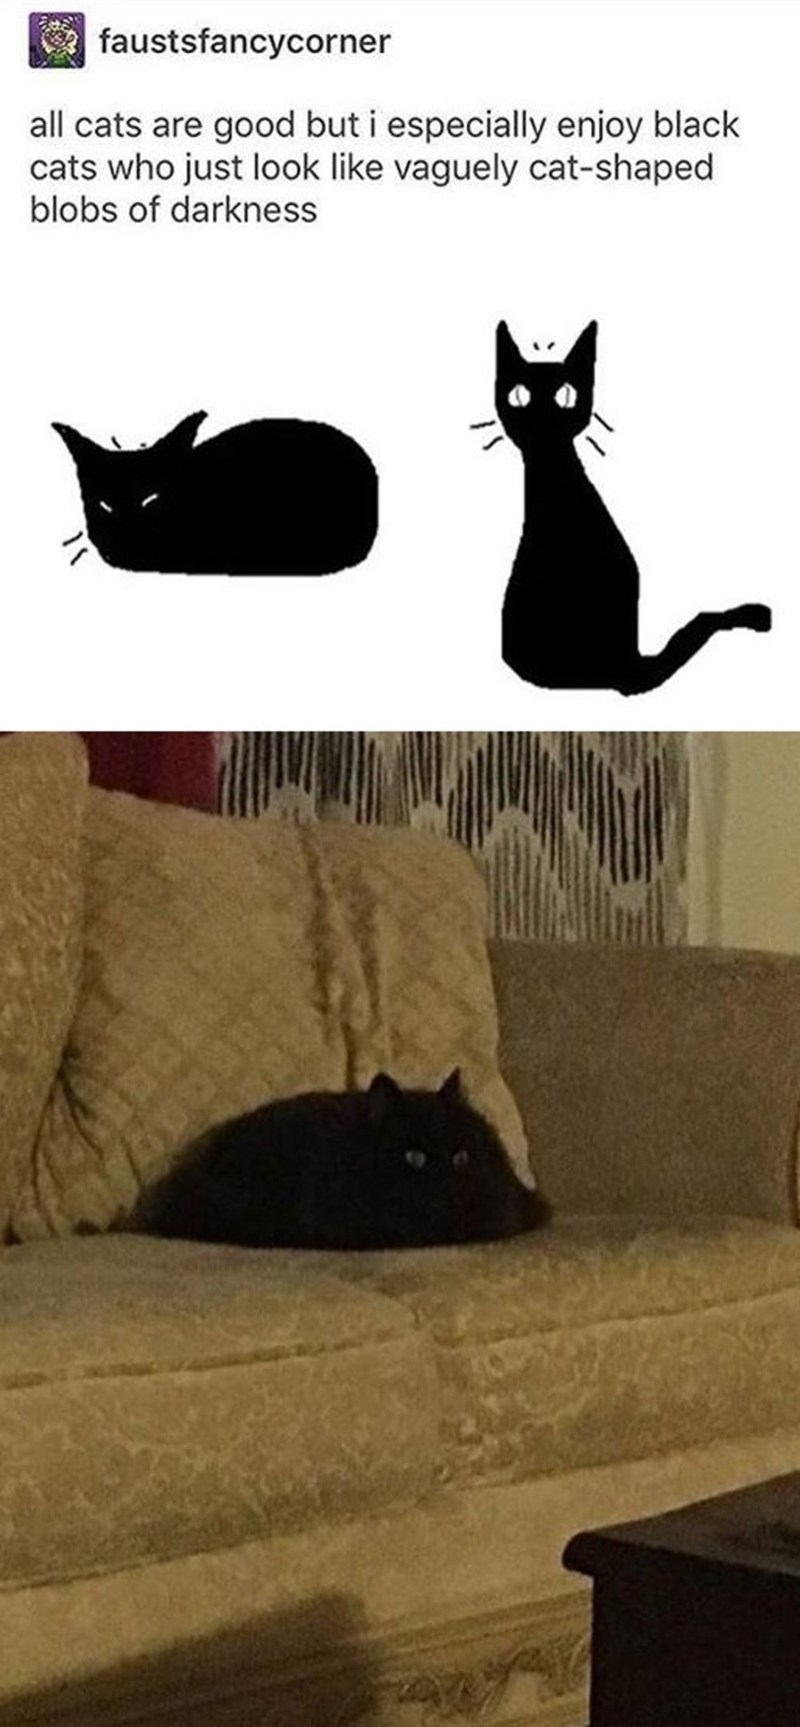 Cat - faustsfancycorner all cats are good but i especially enjoy black cats who just look like vaguely cat-shaped blobs of darkness